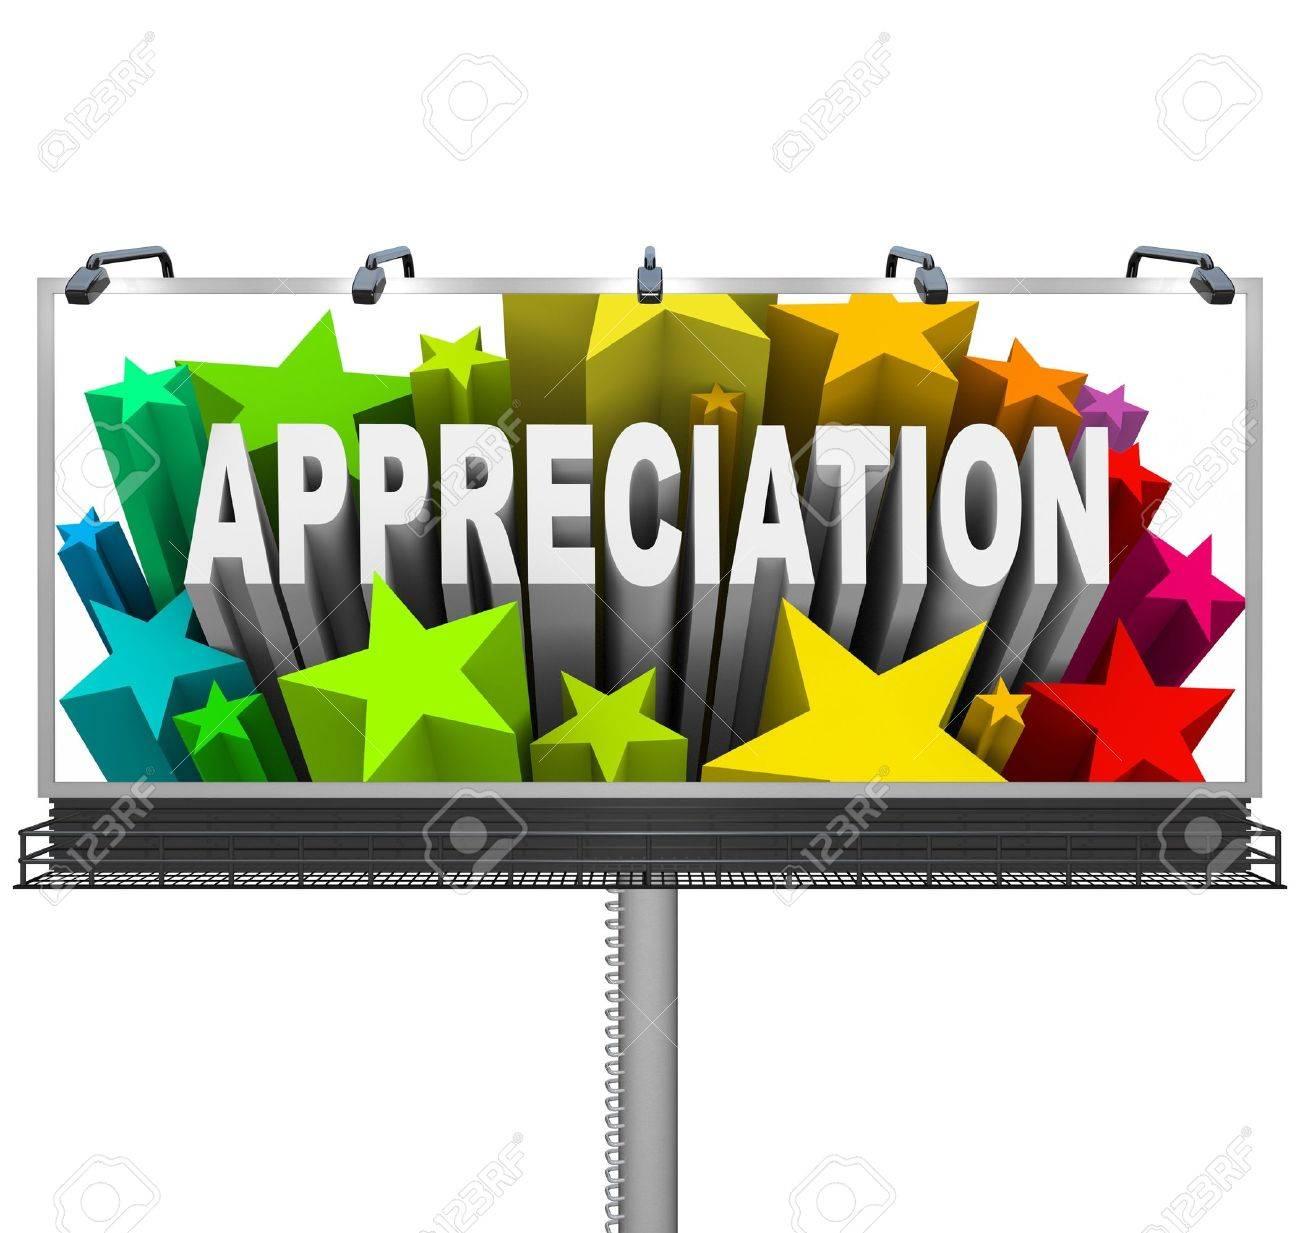 an outdoor billboard communications appreciation and recognition